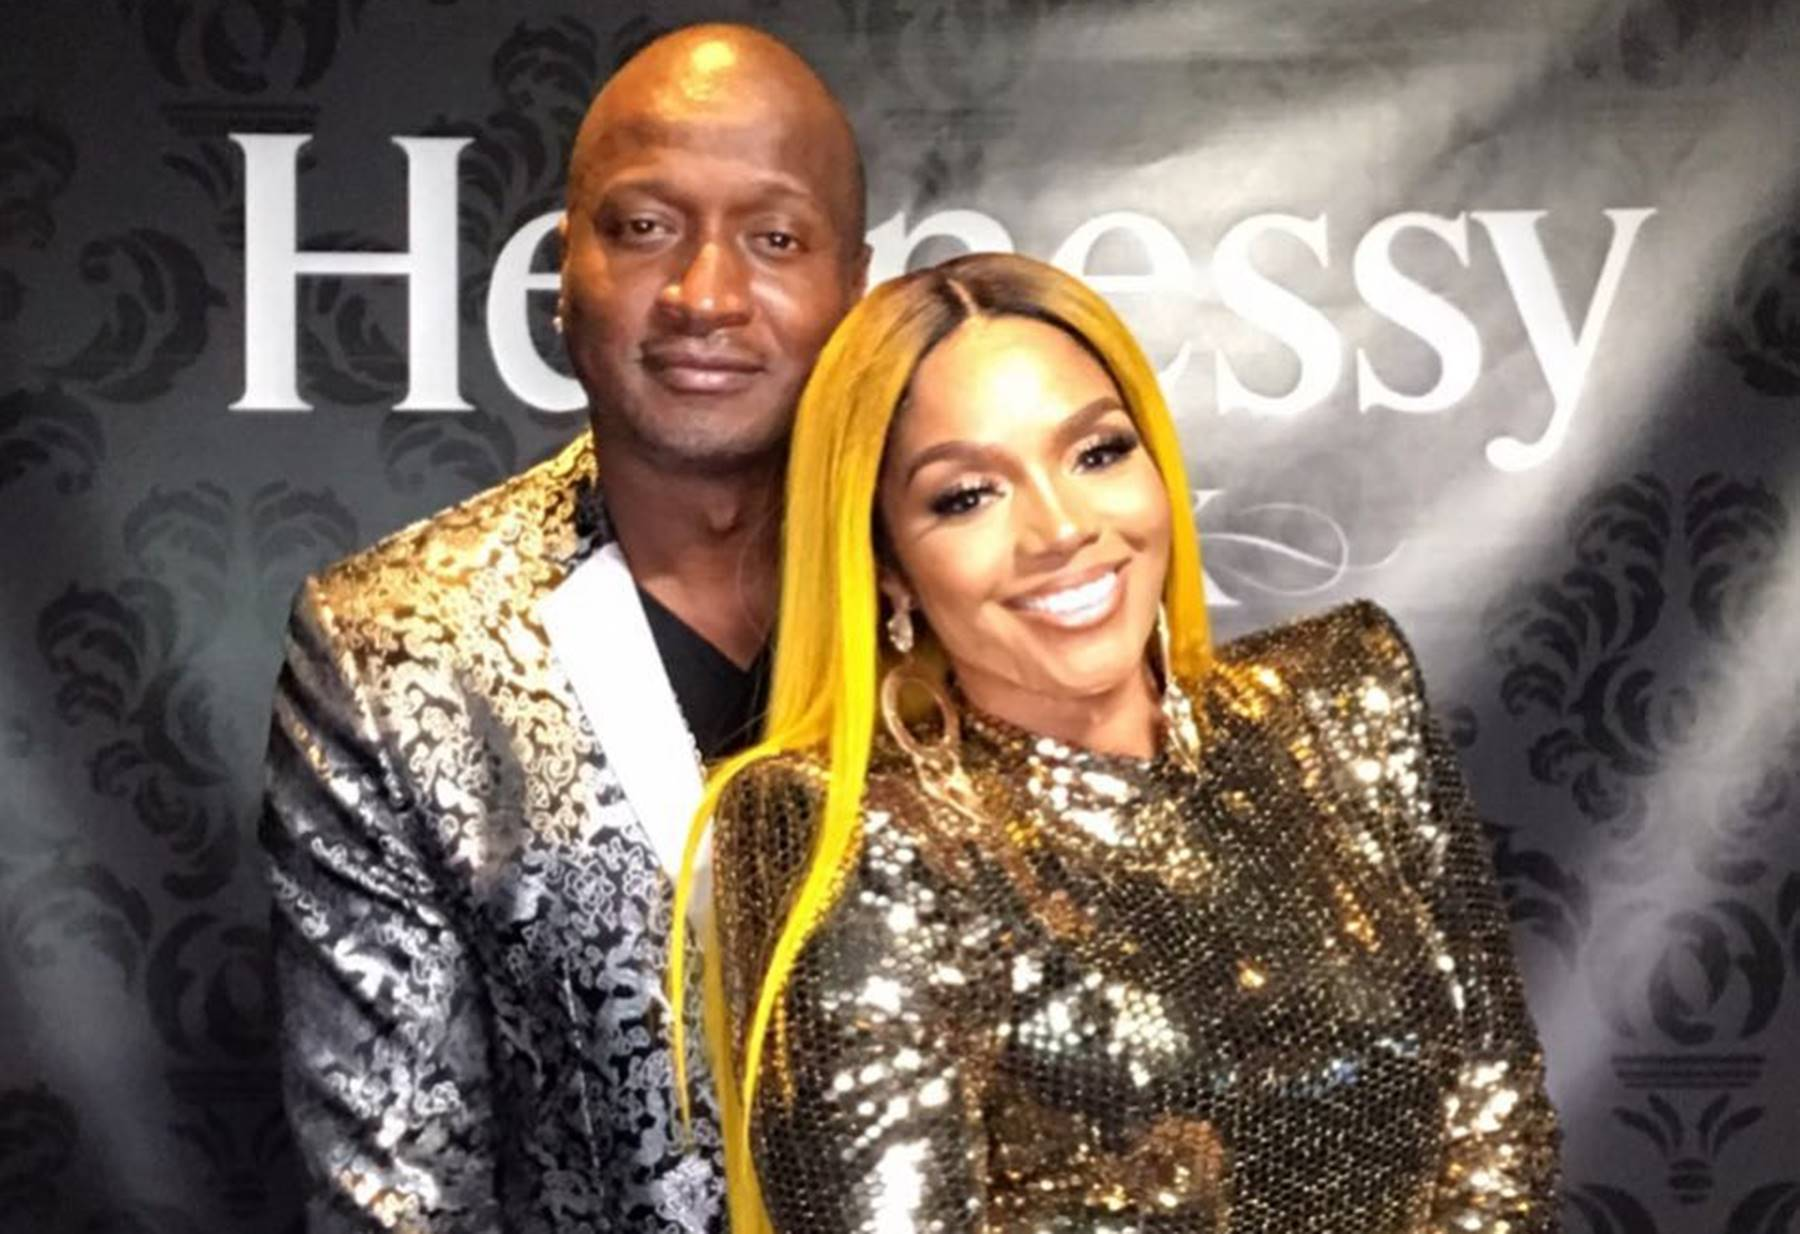 Rasheeda Frost Reveals The Juicy Conversation She Had With Kirk Frost – Check Out Her Video